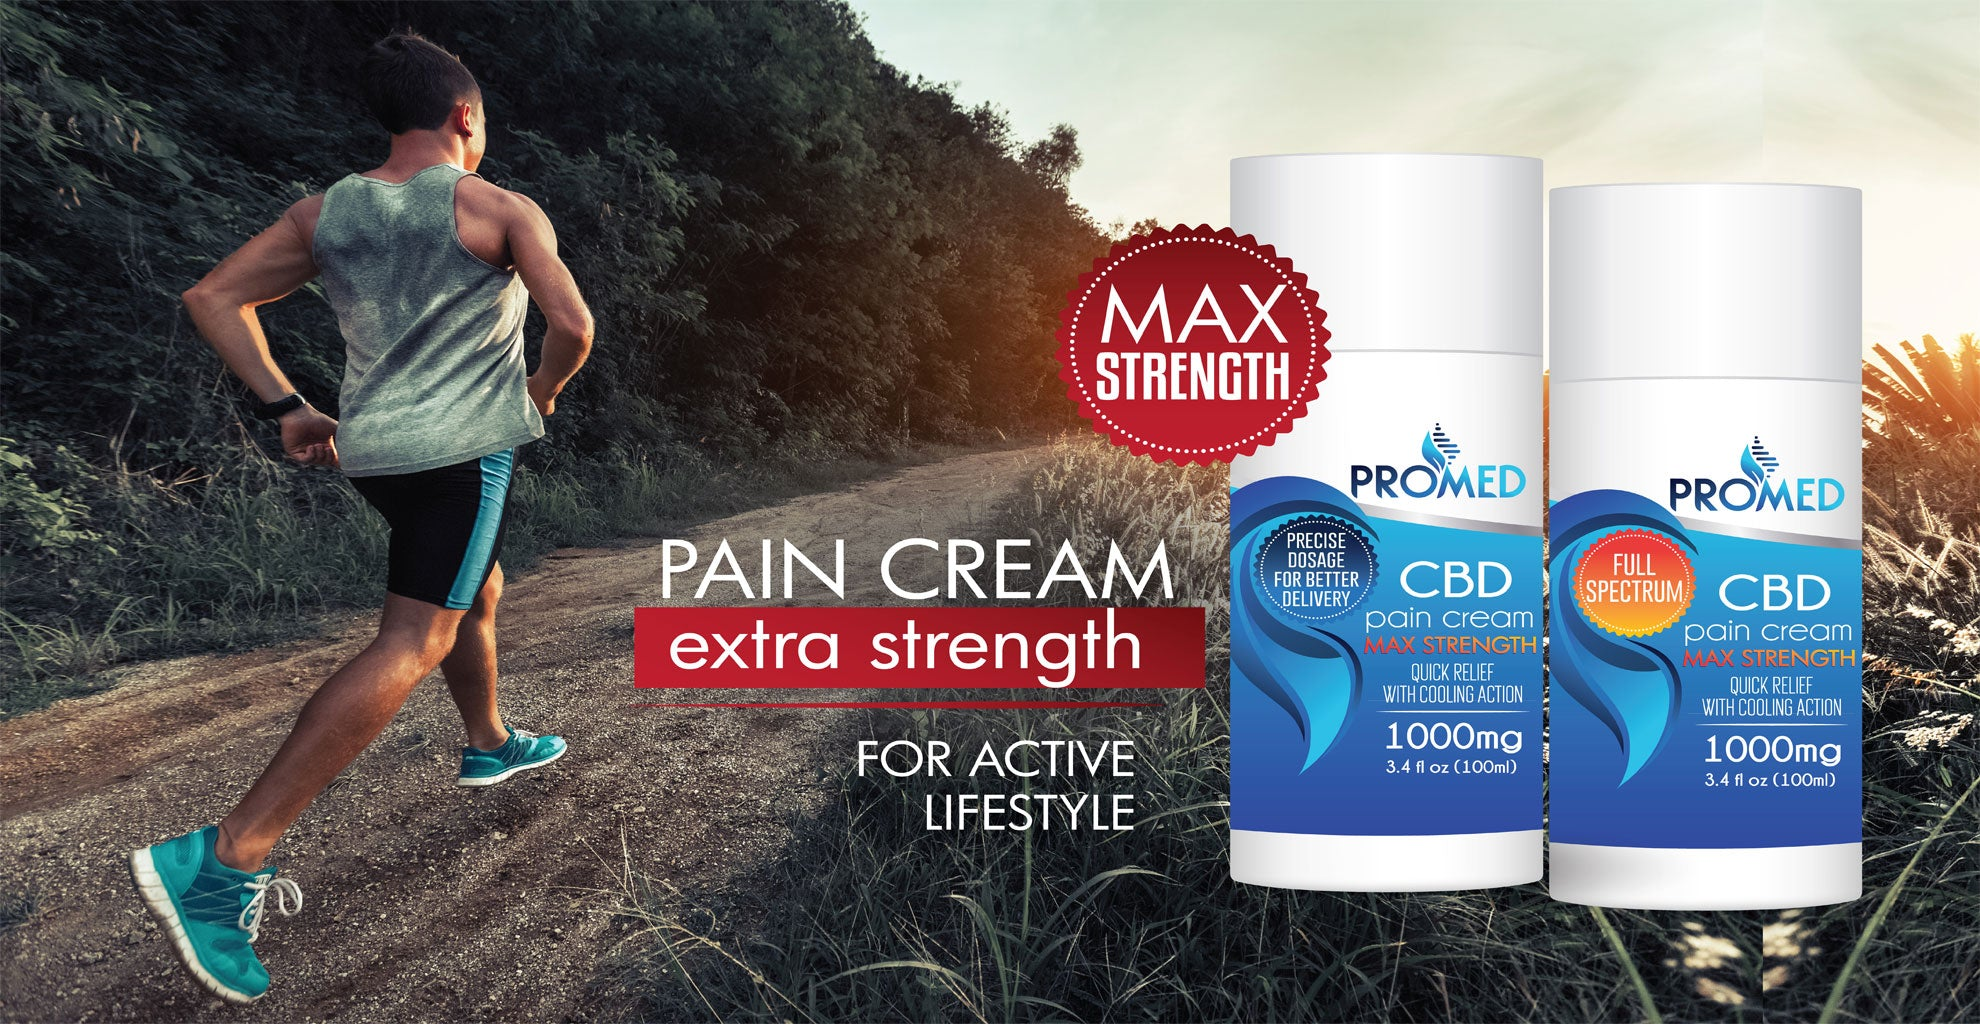 promed cbd pain cream